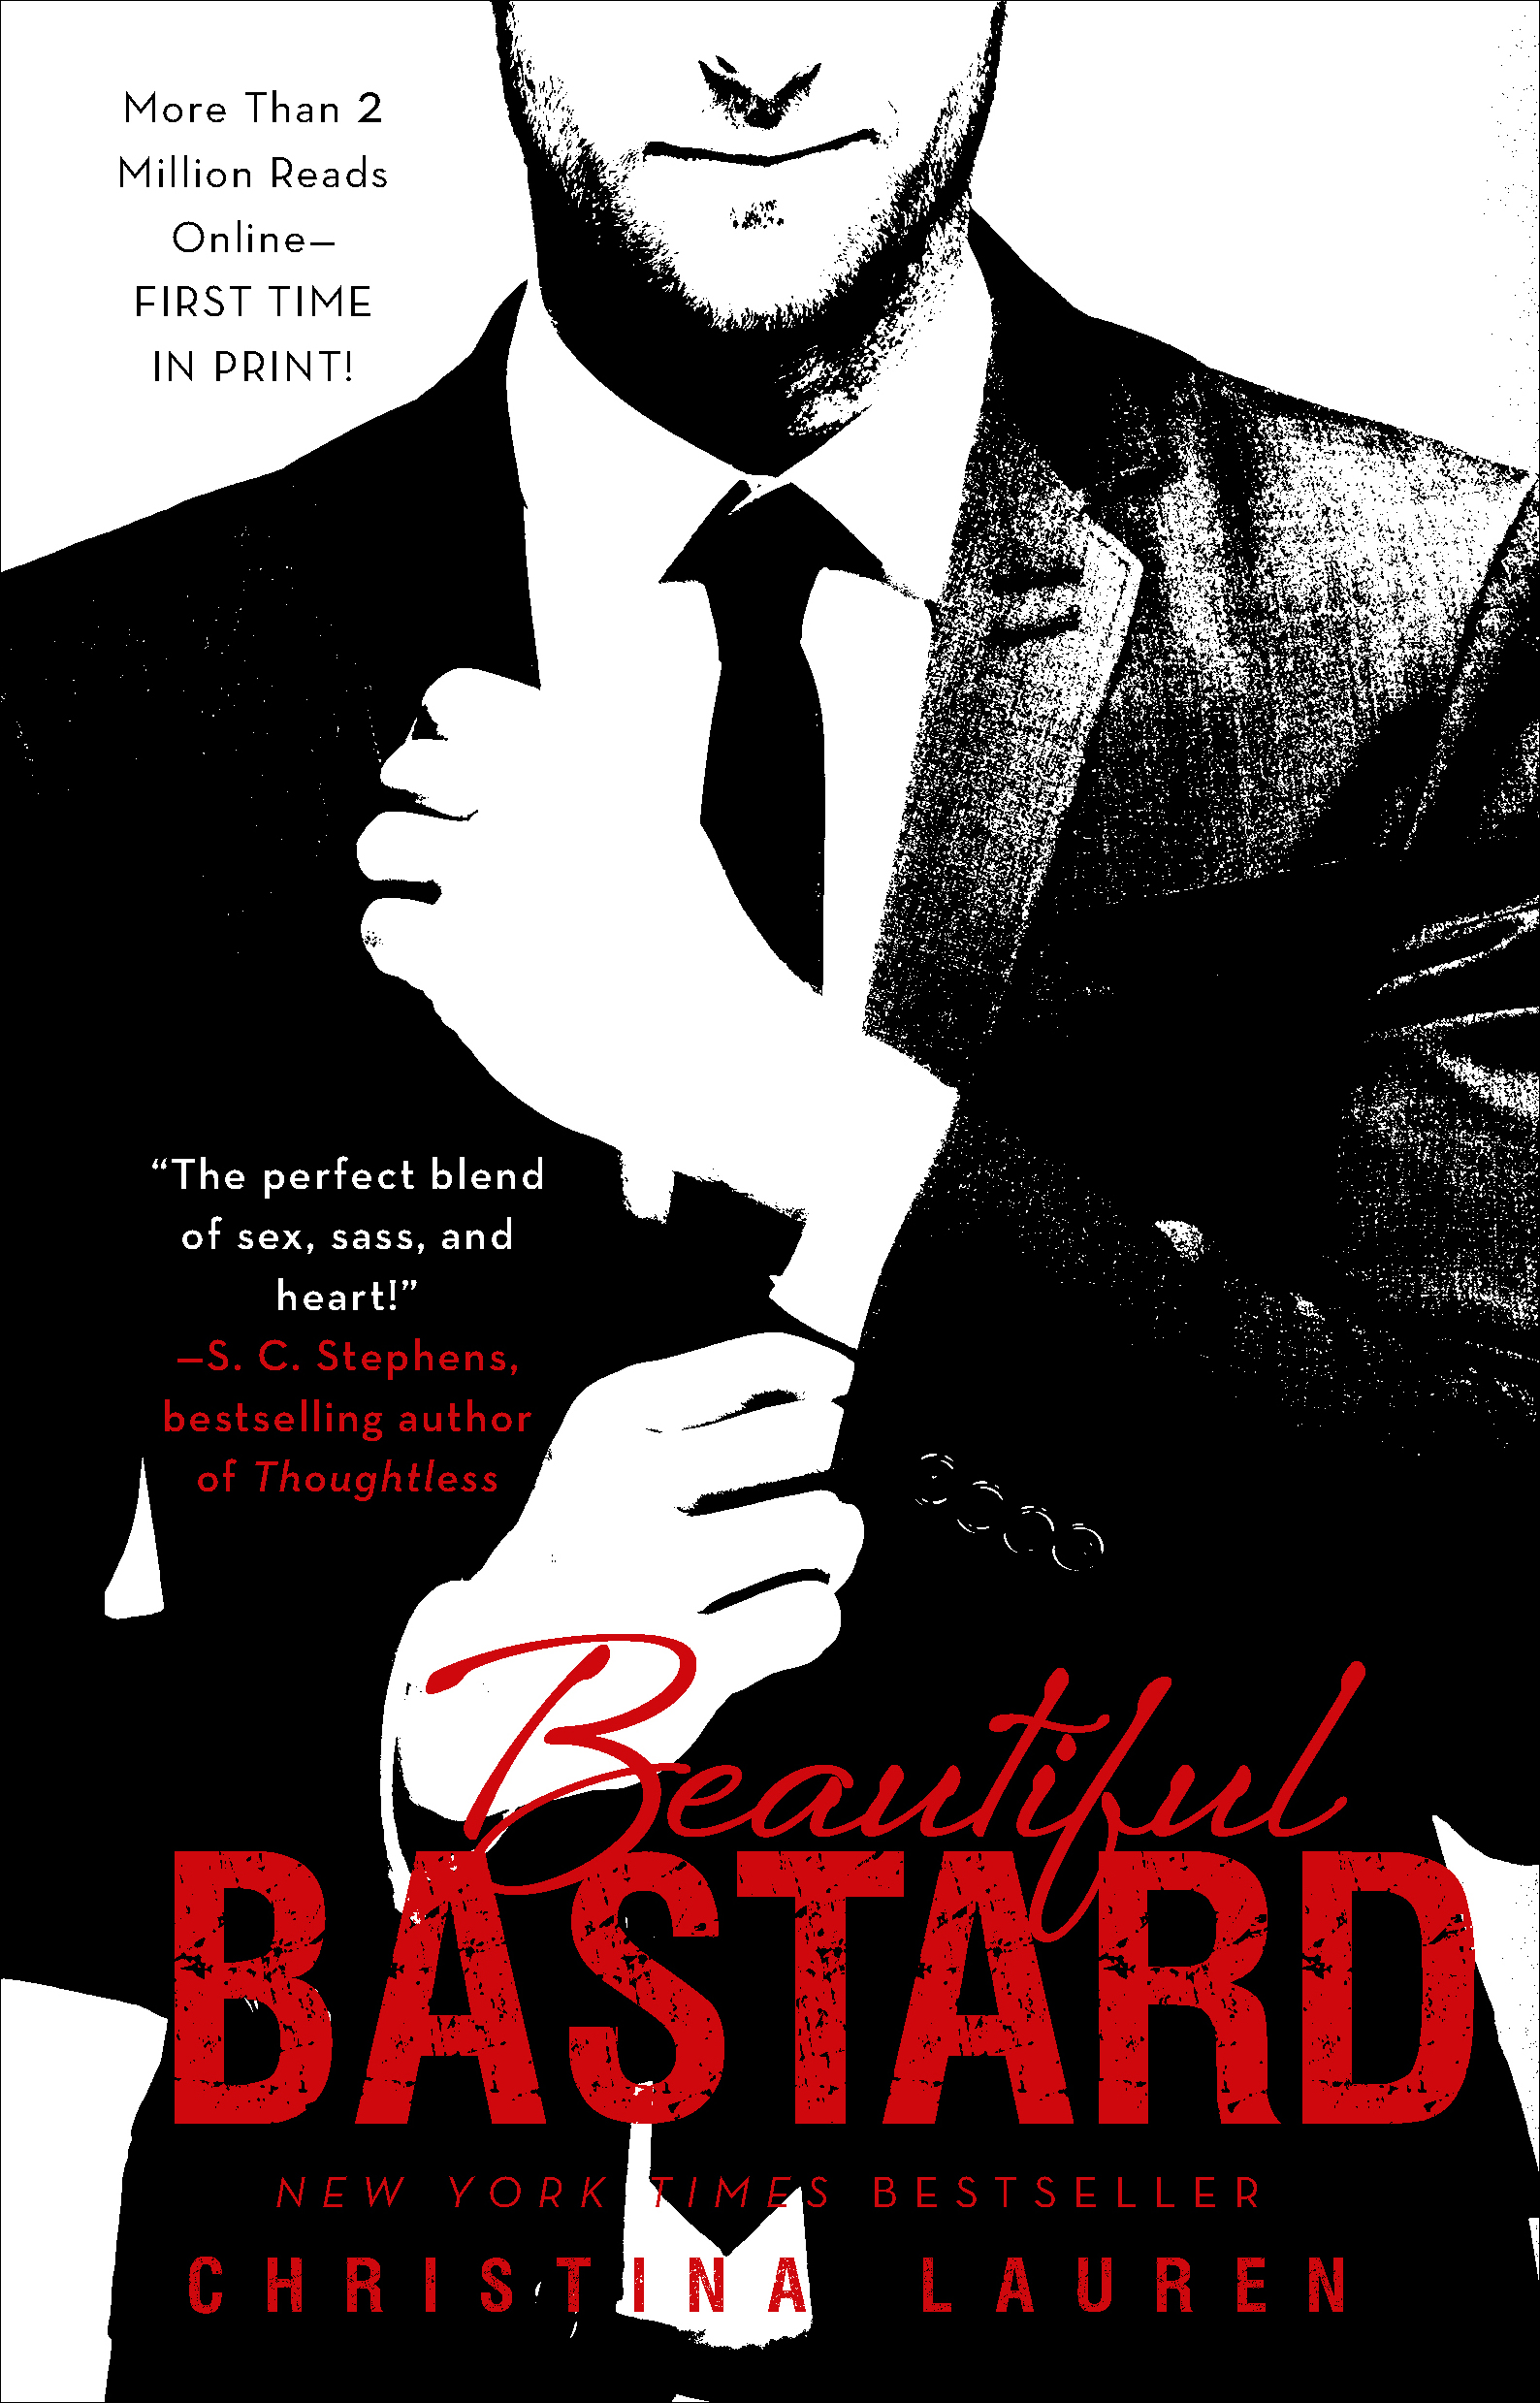 Beautiful bastard special signed edition 9781476797212 hr